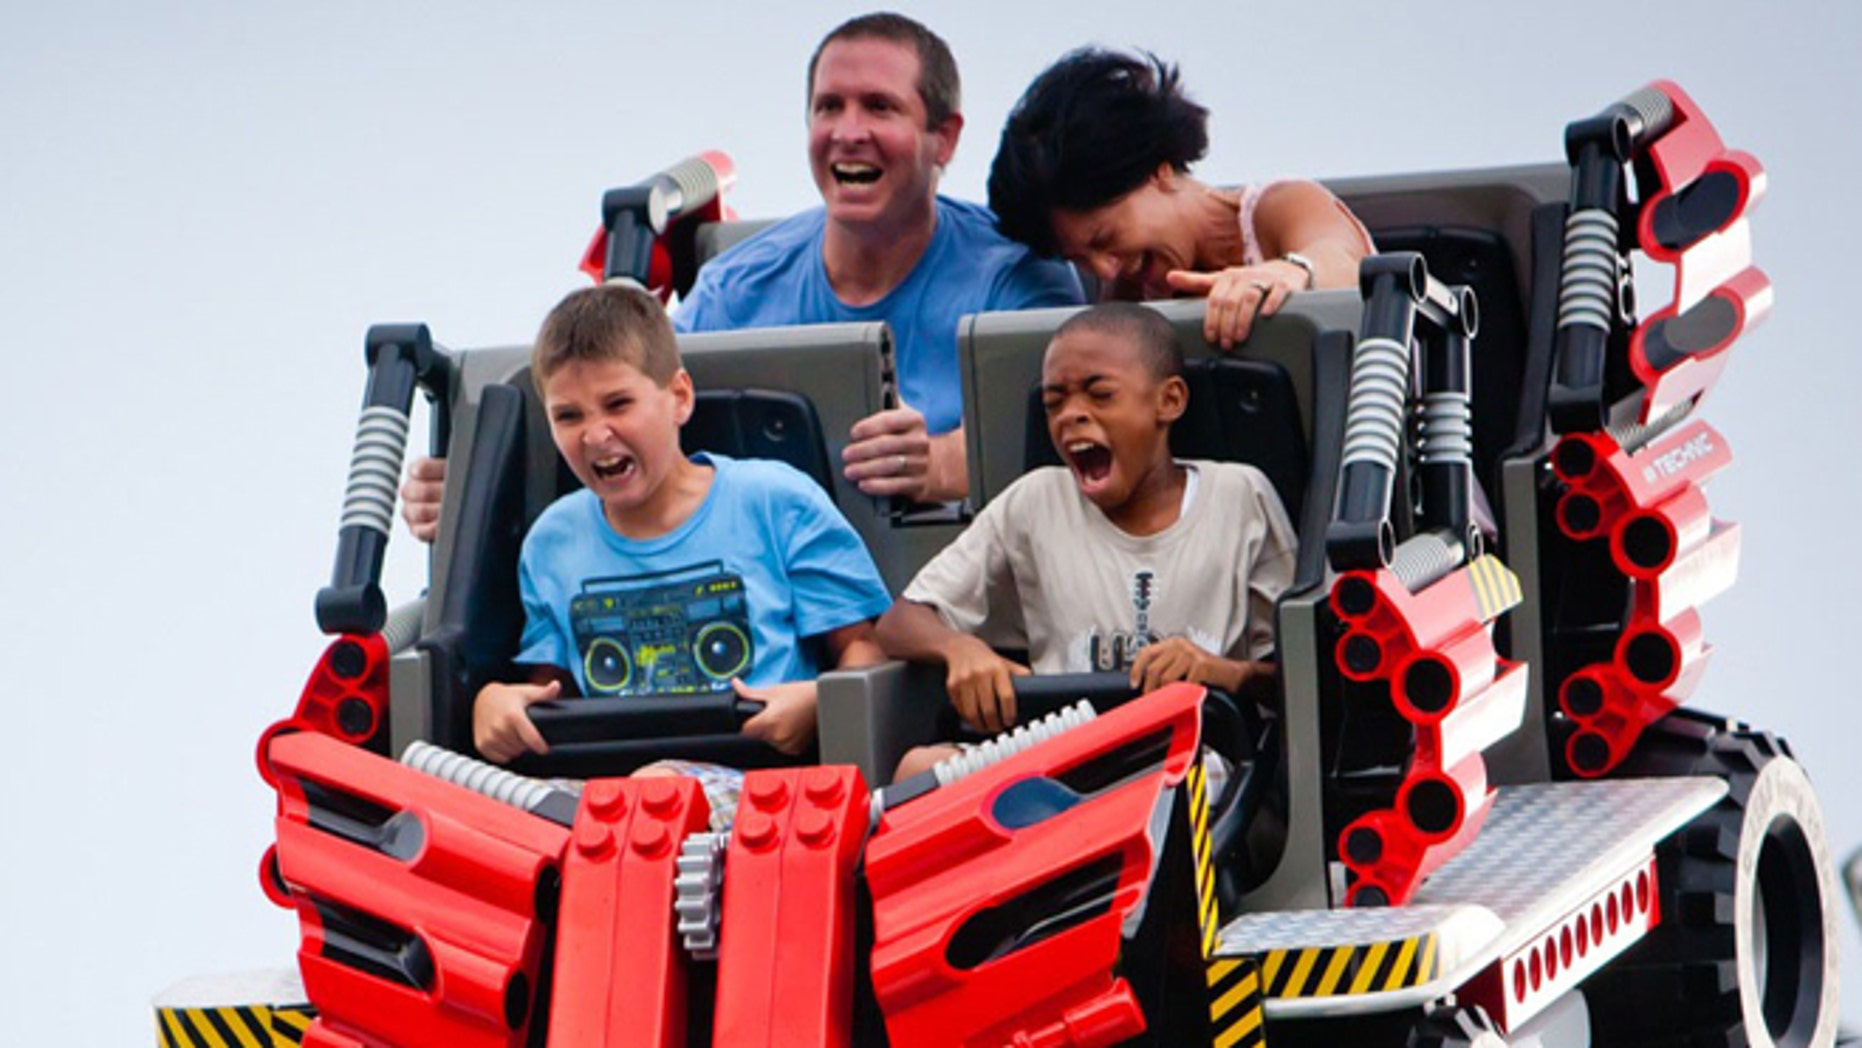 This new breed of roller coaster, like the Technic Coaster at LEGOLAND Florida, is super-fun, but super scary to some.